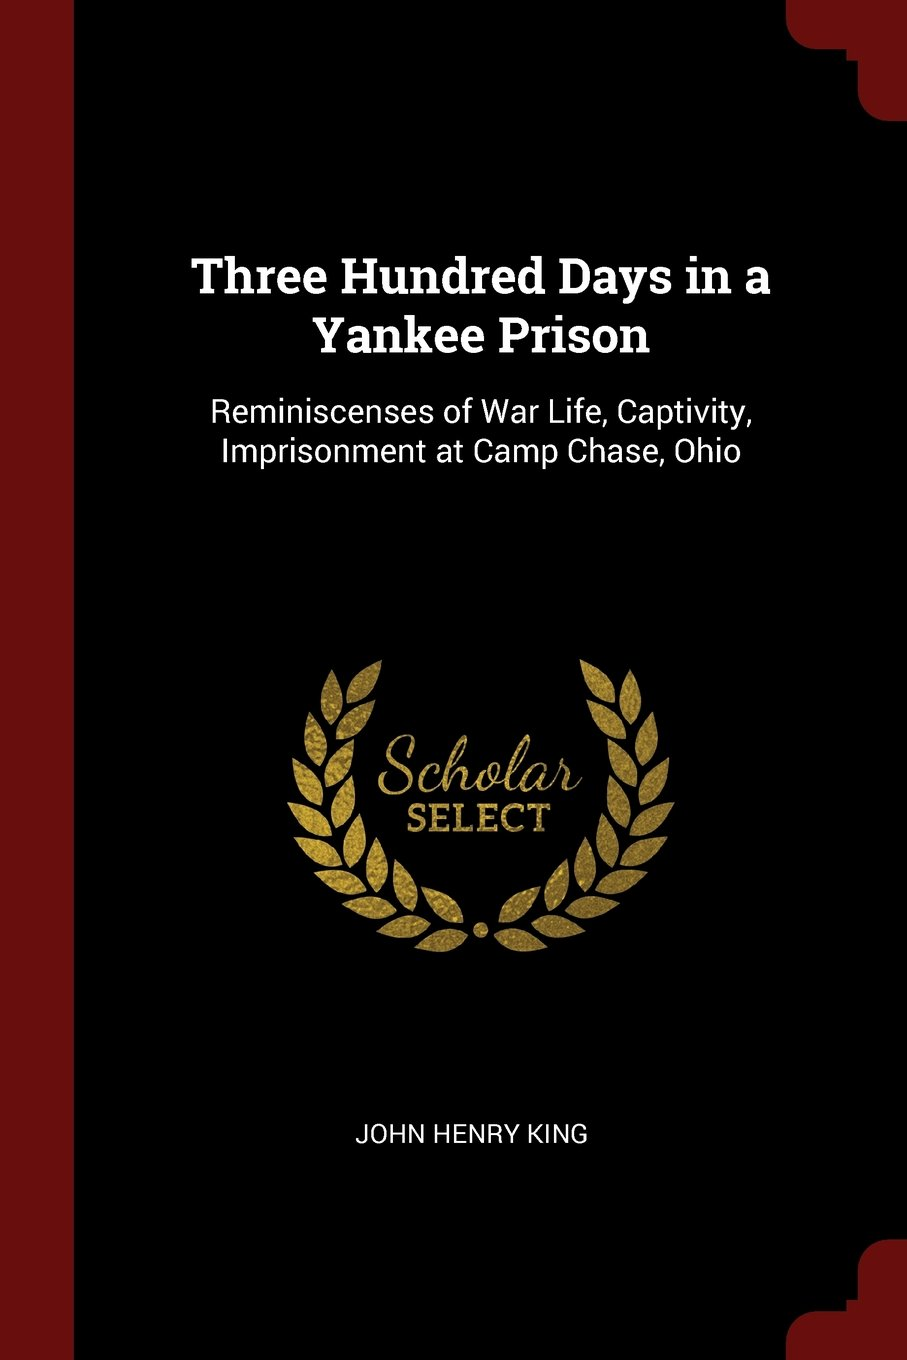 Download Three Hundred Days in a Yankee Prison: Reminiscenses of War Life, Captivity, Imprisonment at Camp Chase, Ohio pdf